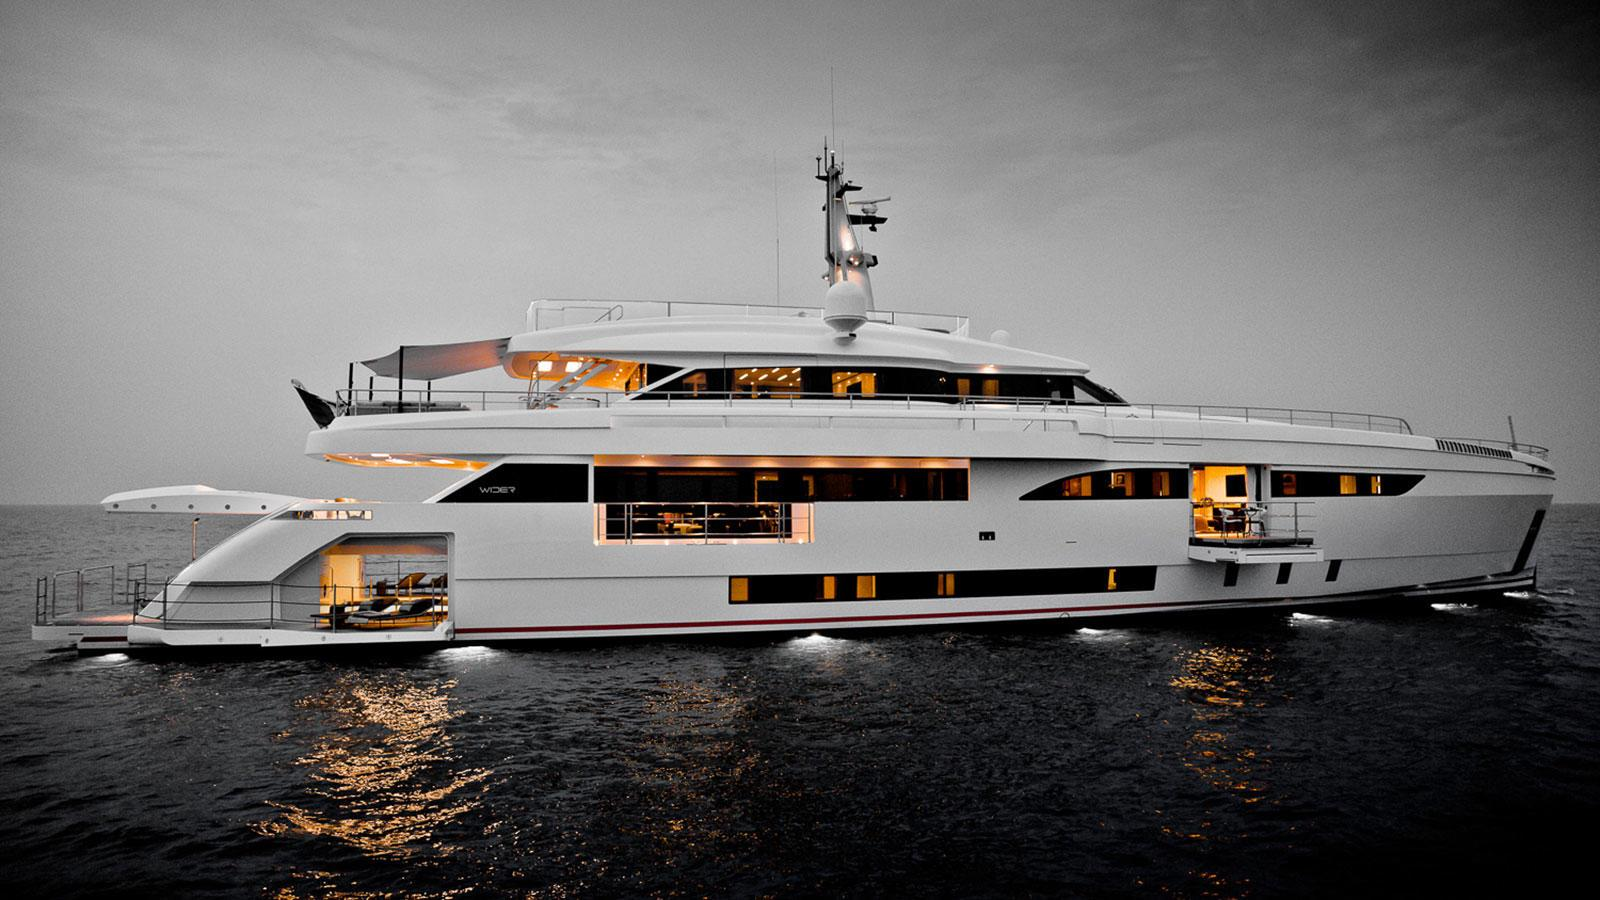 bartali-motor-yacht-wider-2016-46m-anchored